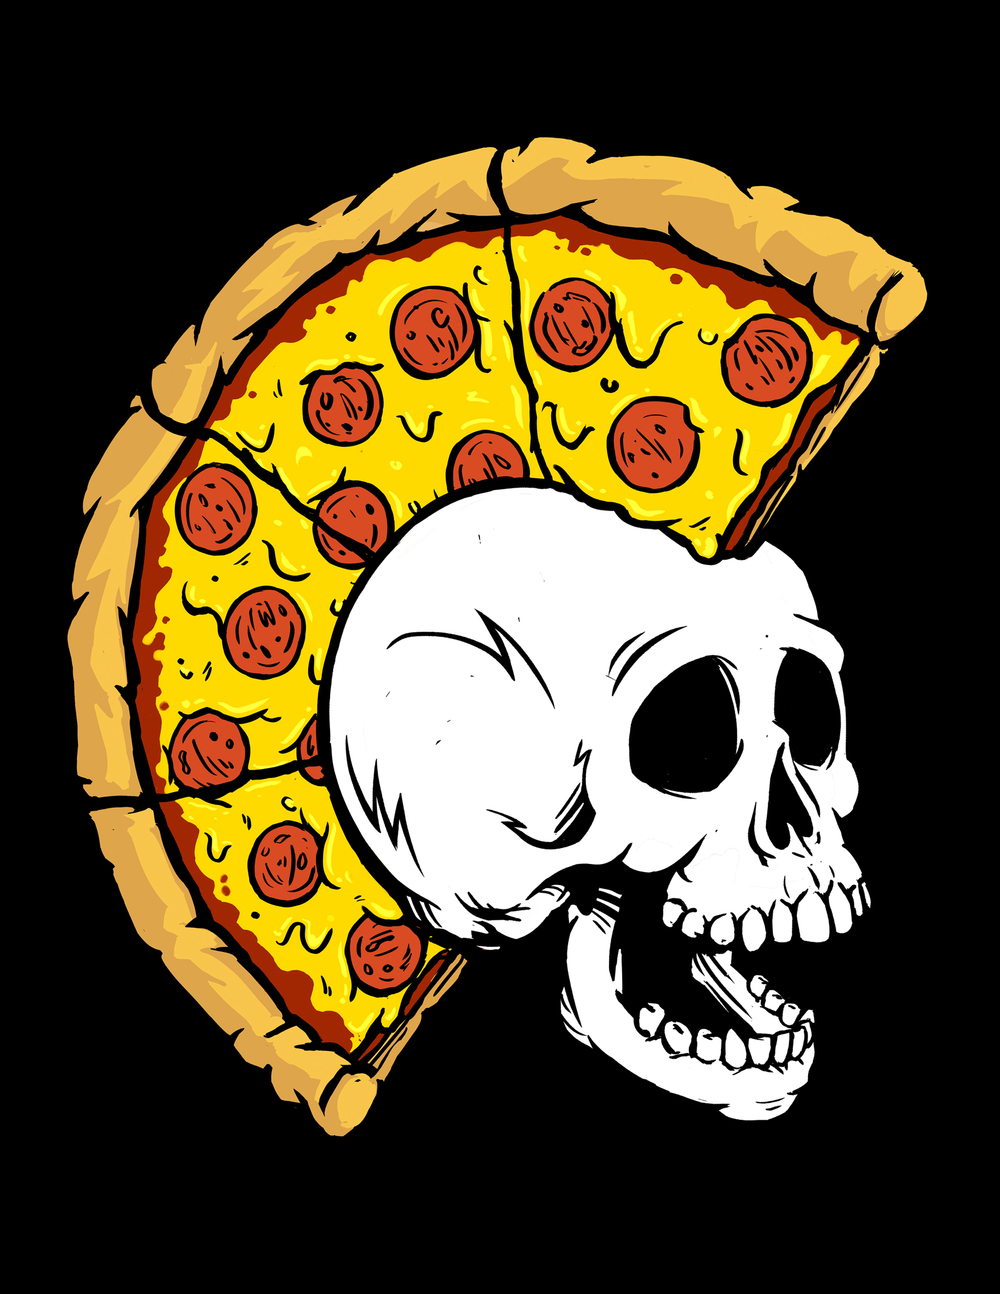 pizza brigade website crusty 1.jpg